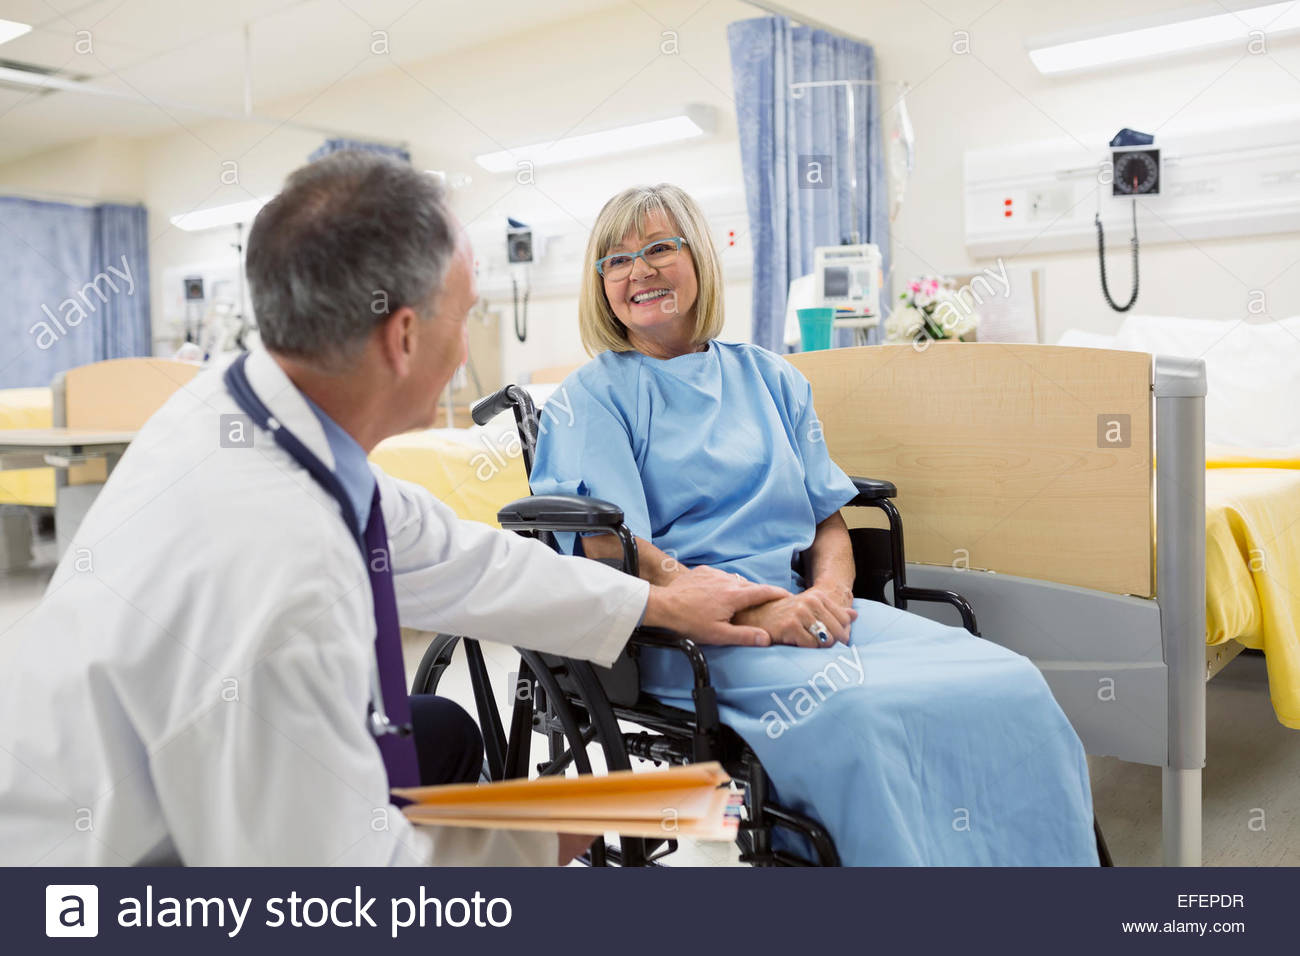 Man And Hospital Gown And Wheelchair Stock Photos & Man And Hospital ...